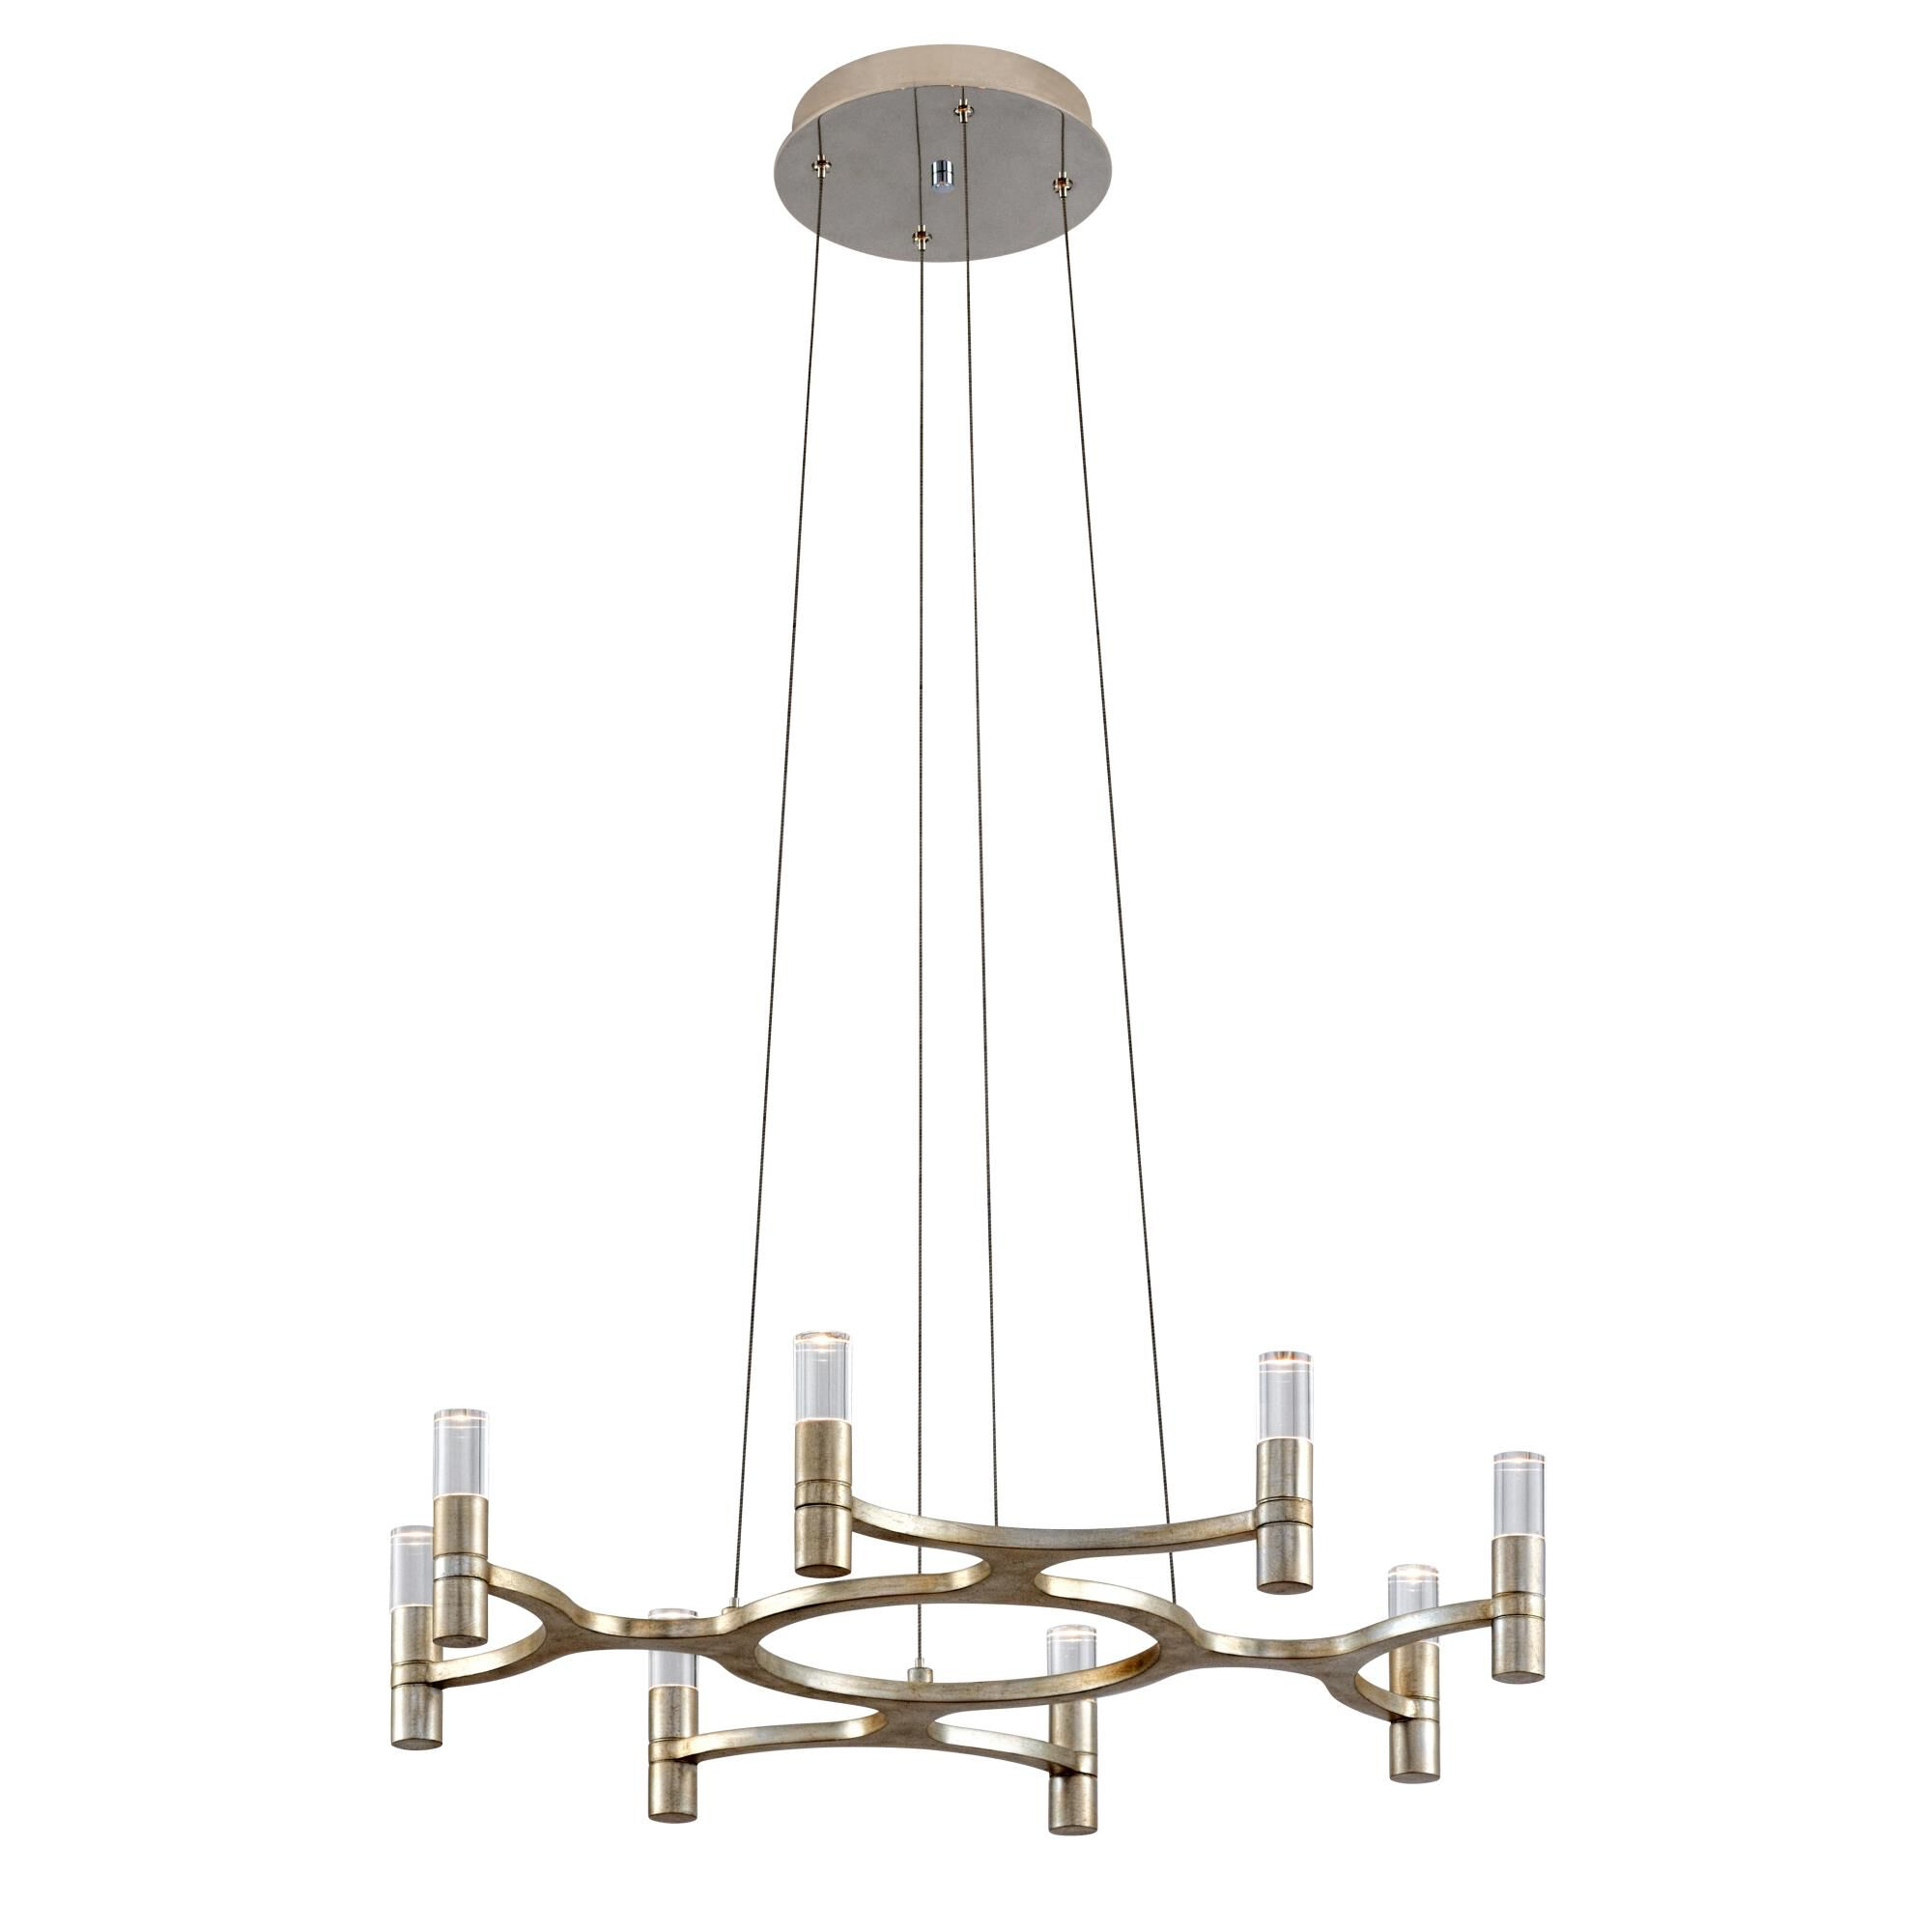 Corbett Lighting Nexus 8 Light Led Mini Chandelier Nexus - 258-08 - Modern Contemporary Mini Chandelier